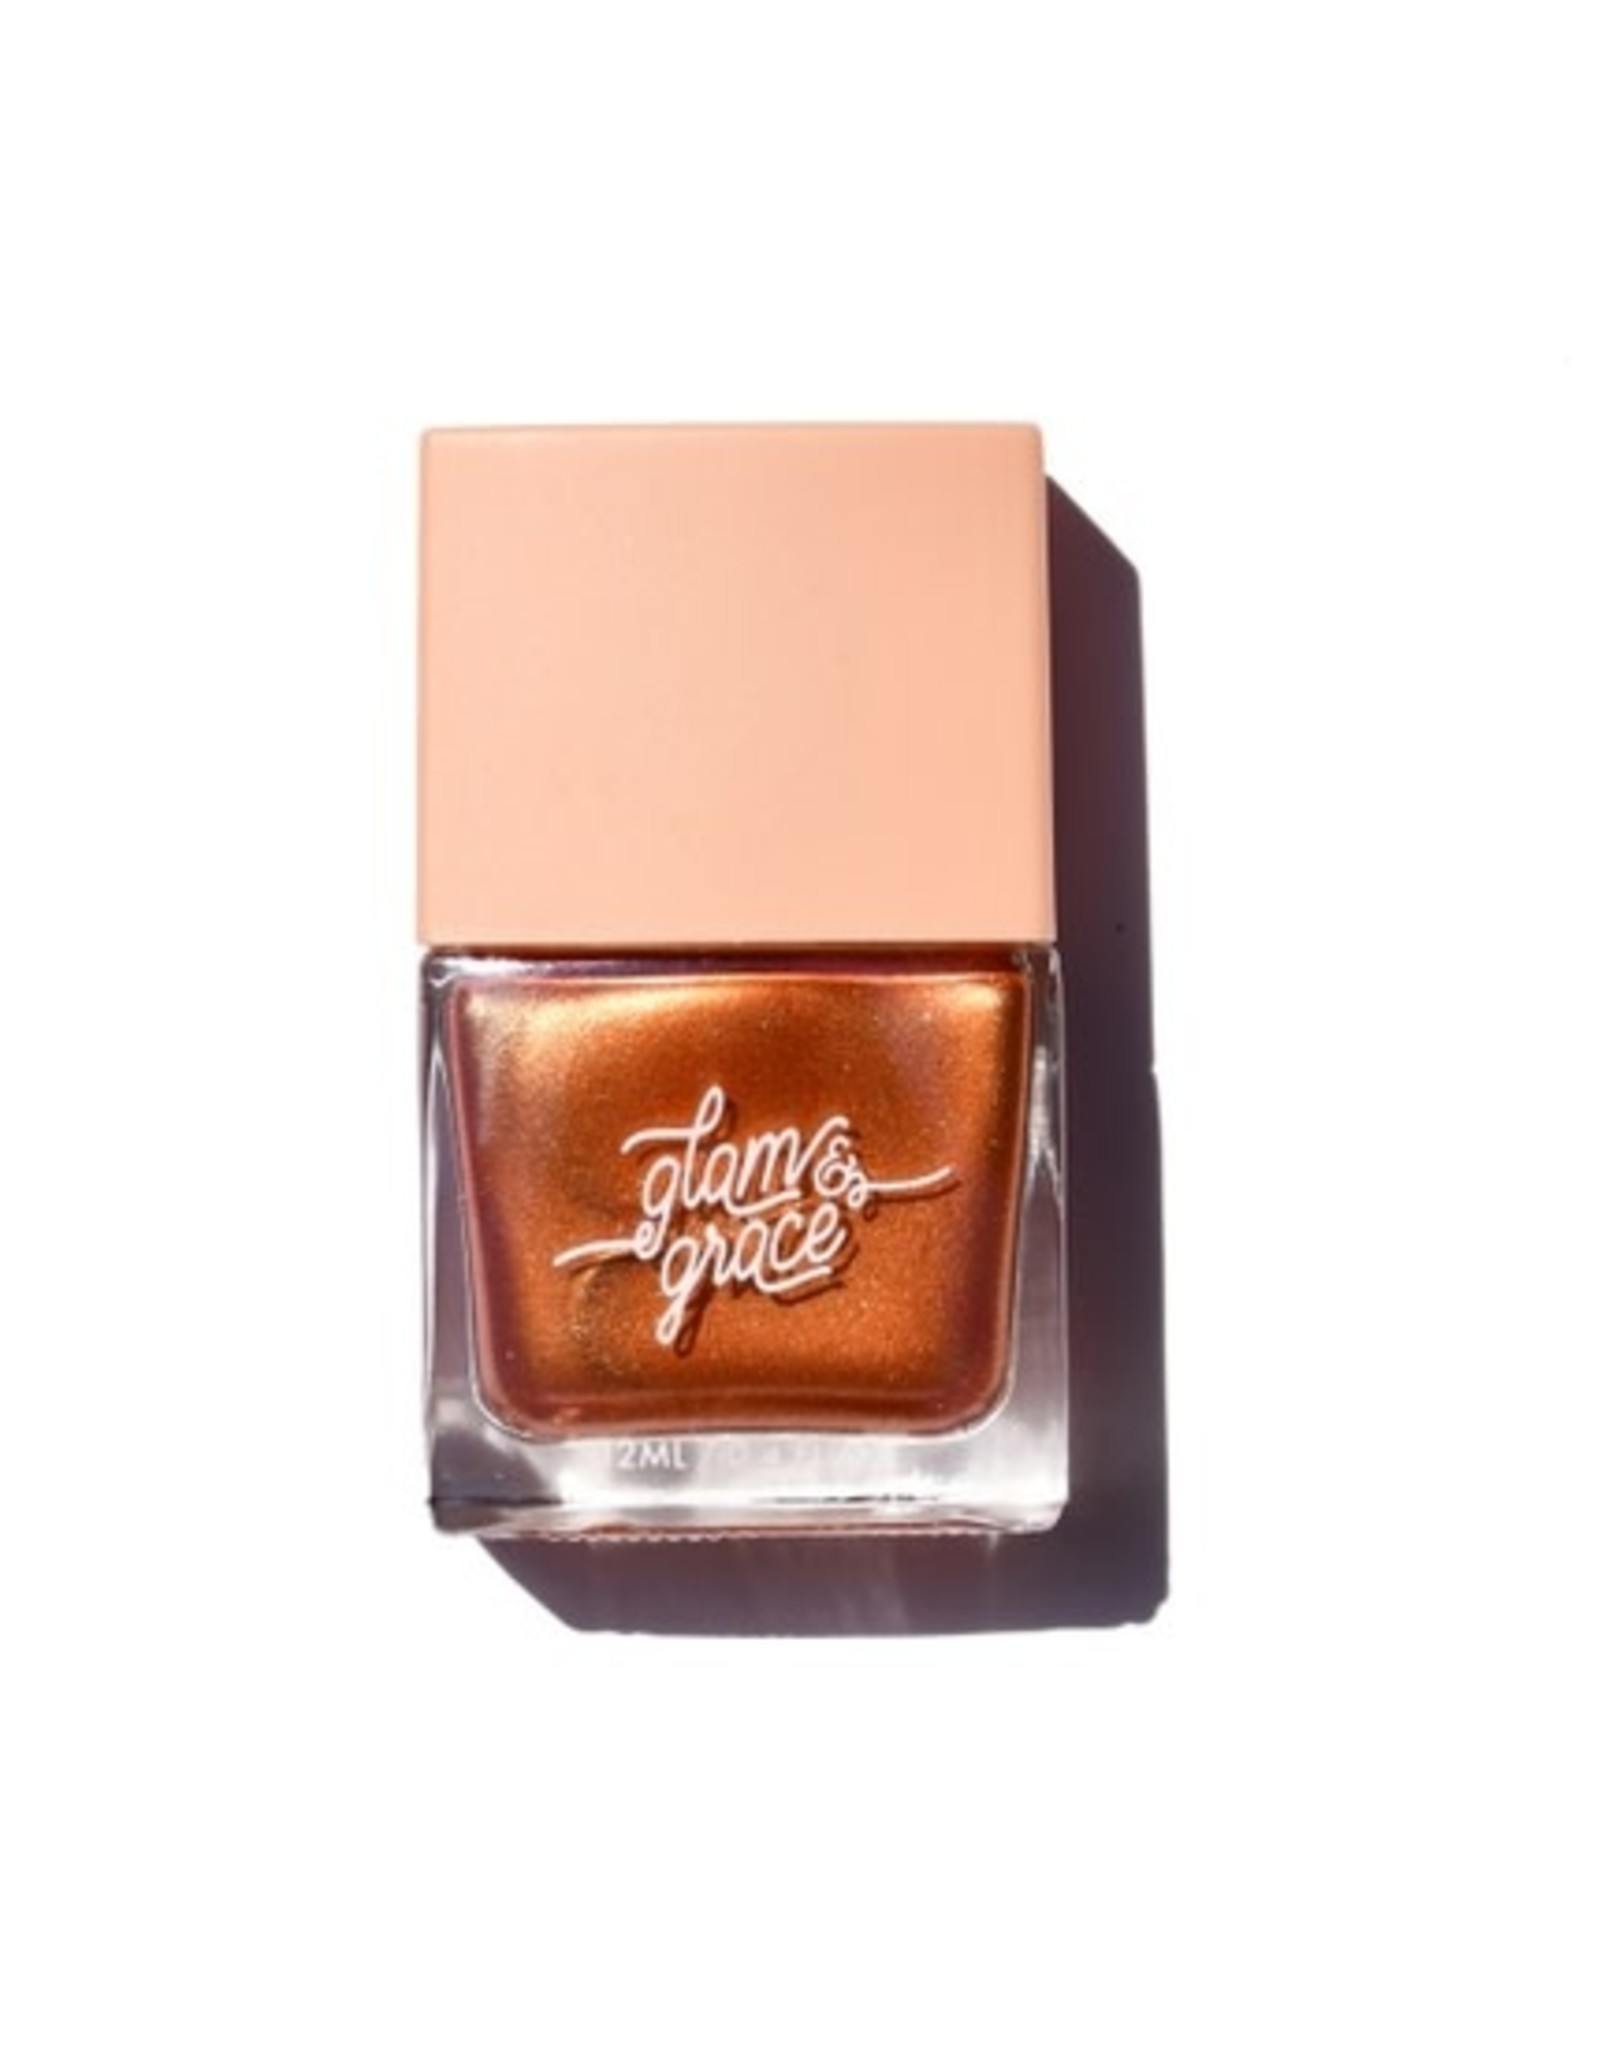 Glam & Grace Glam and Grace Copper Glow